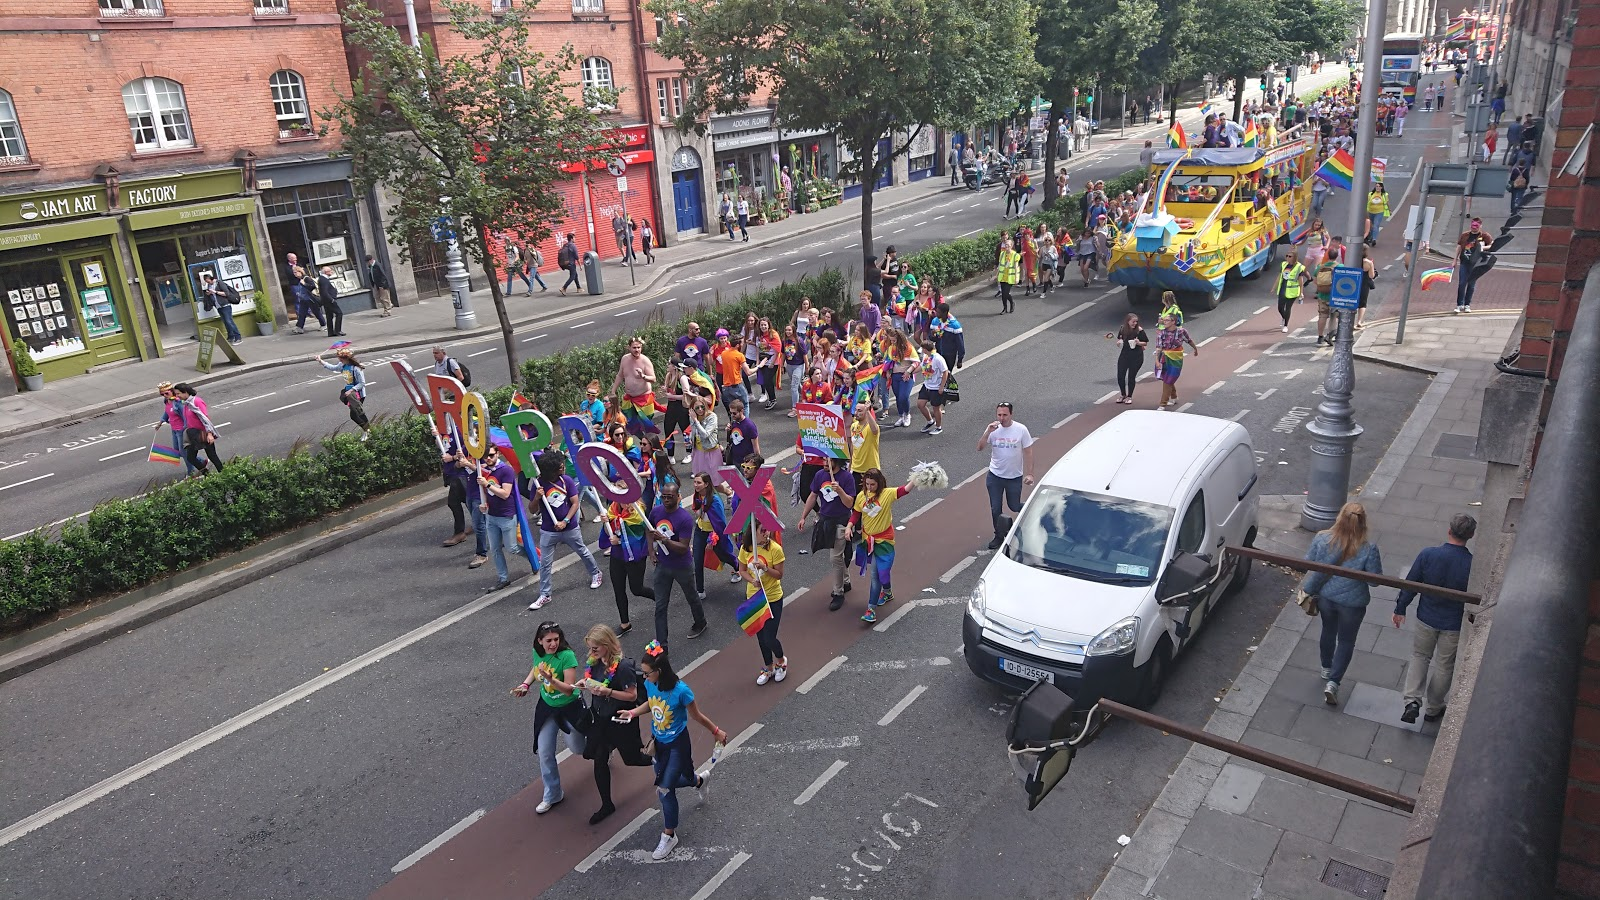 Dropbox in Dublin Pride 2017